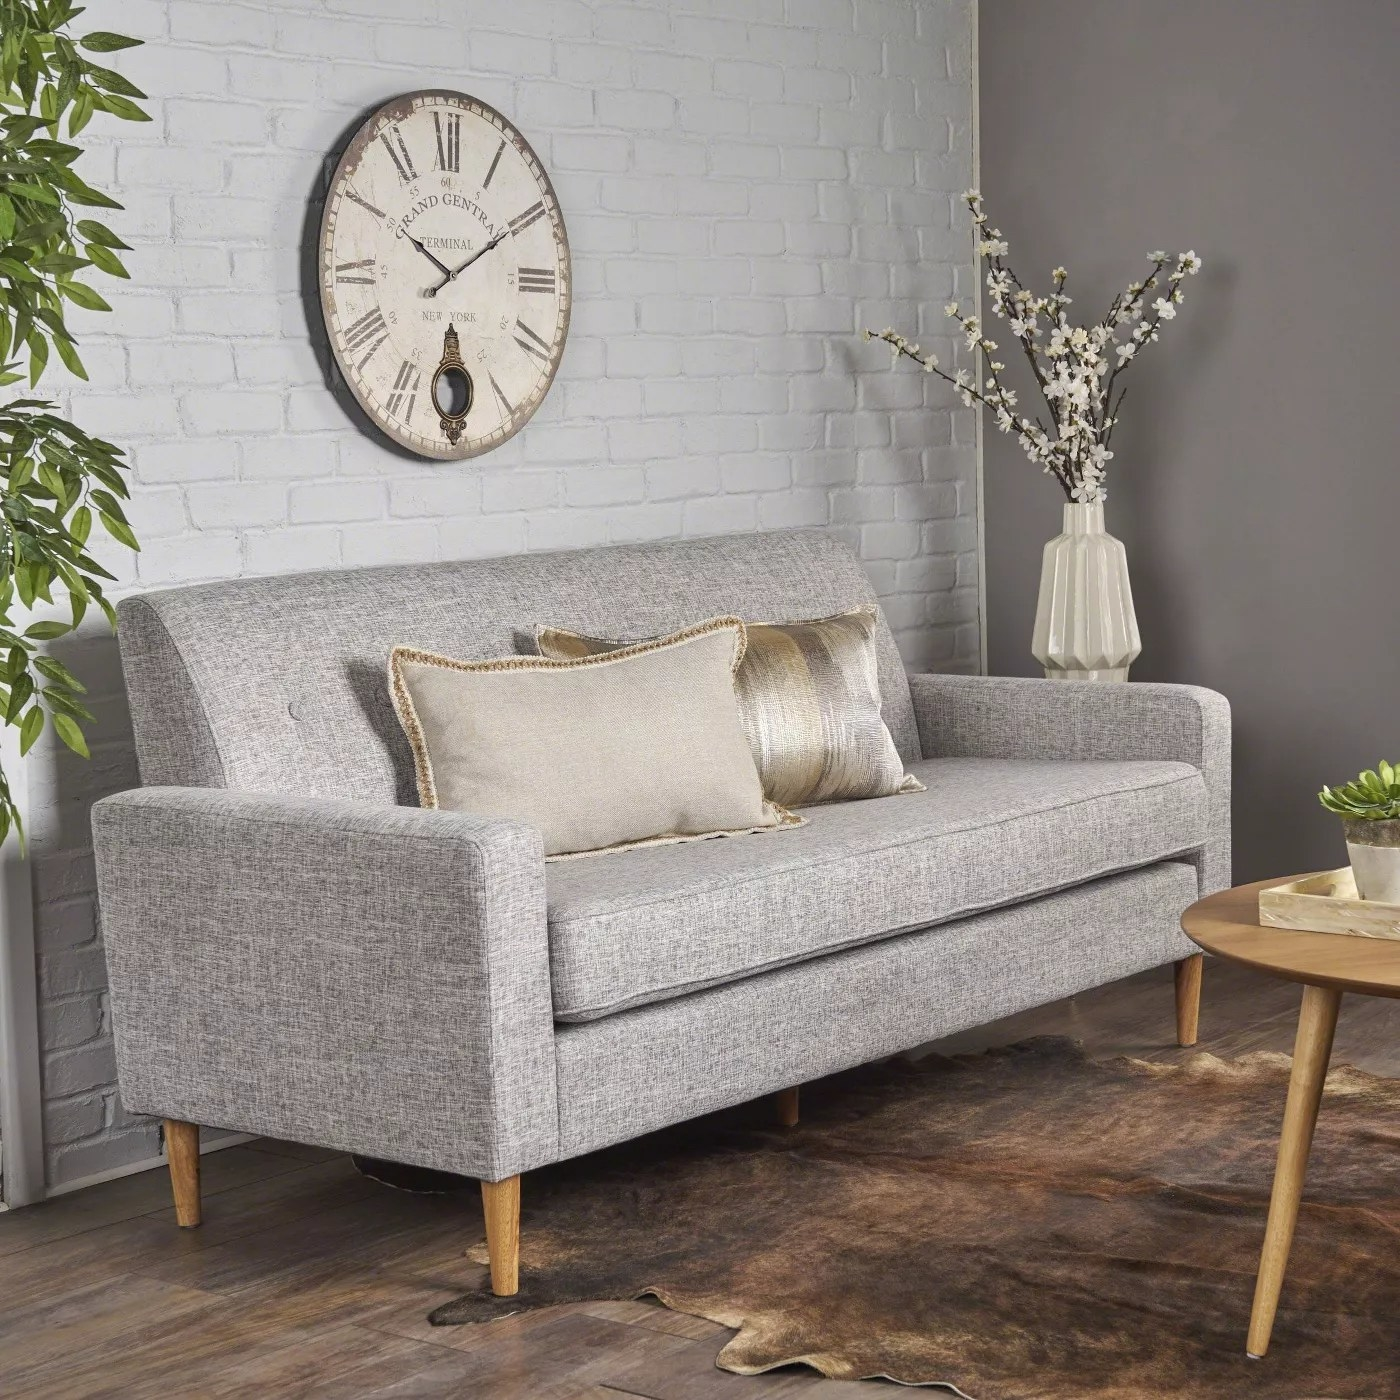 The sofa in gray